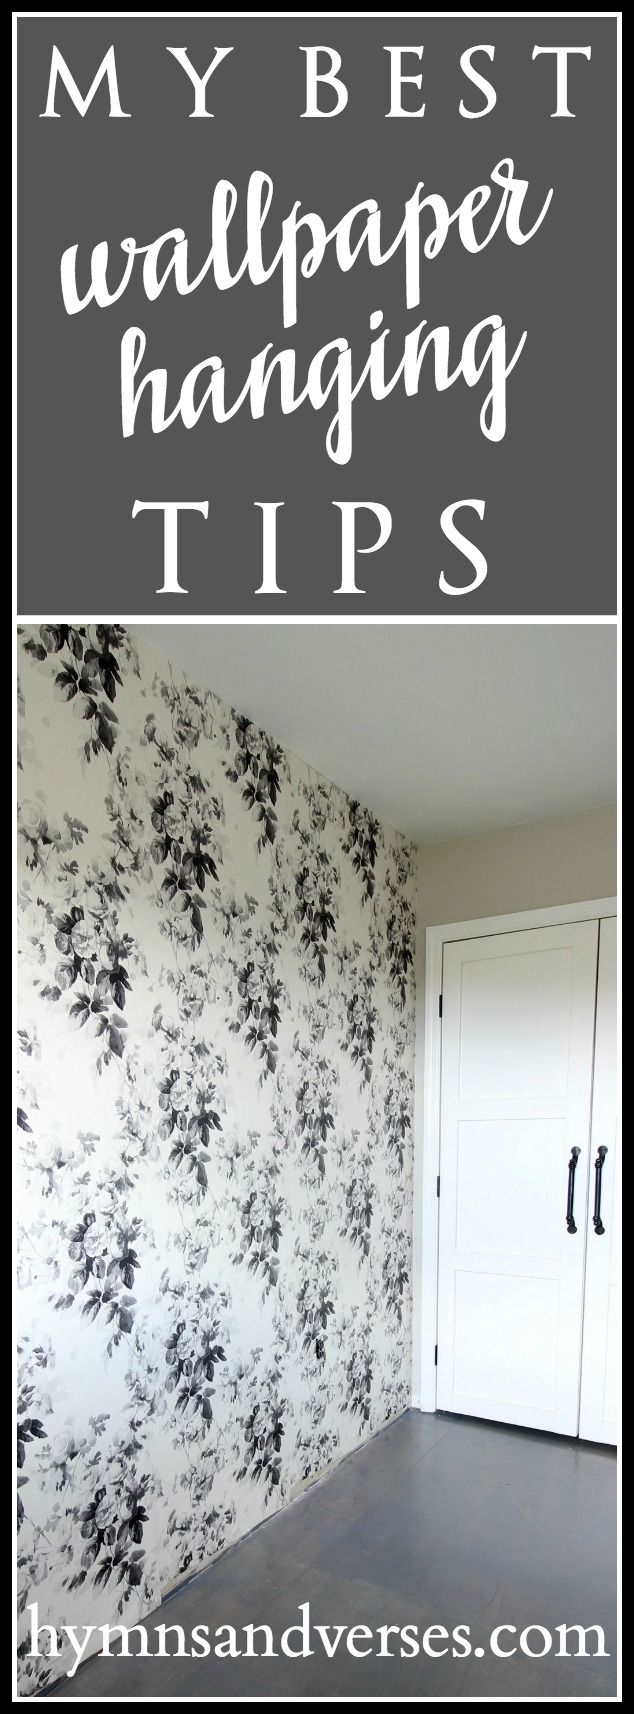 My Best Wallpaper Hanging Tips | Wallpapering tips, How to ...